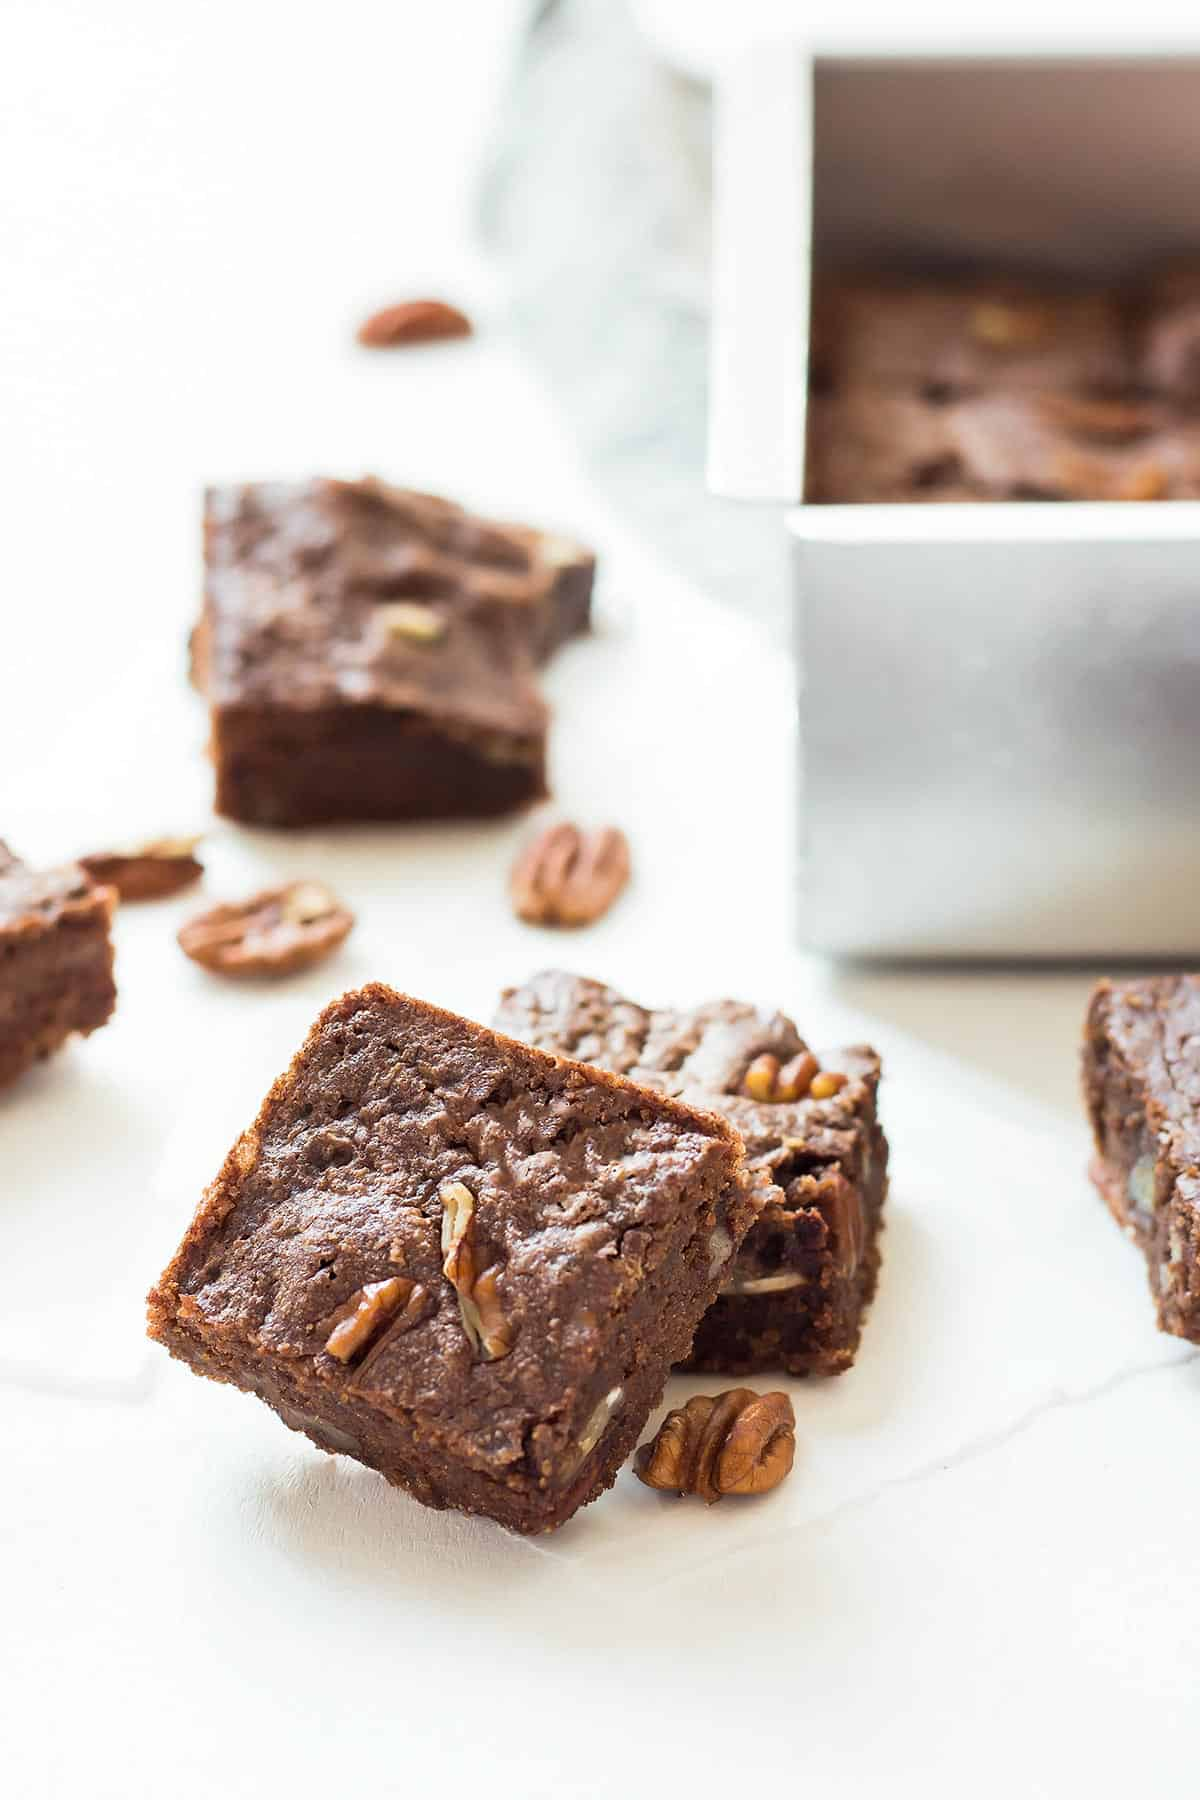 Pieces on Ketogenic brownies on a piece of parchment paper